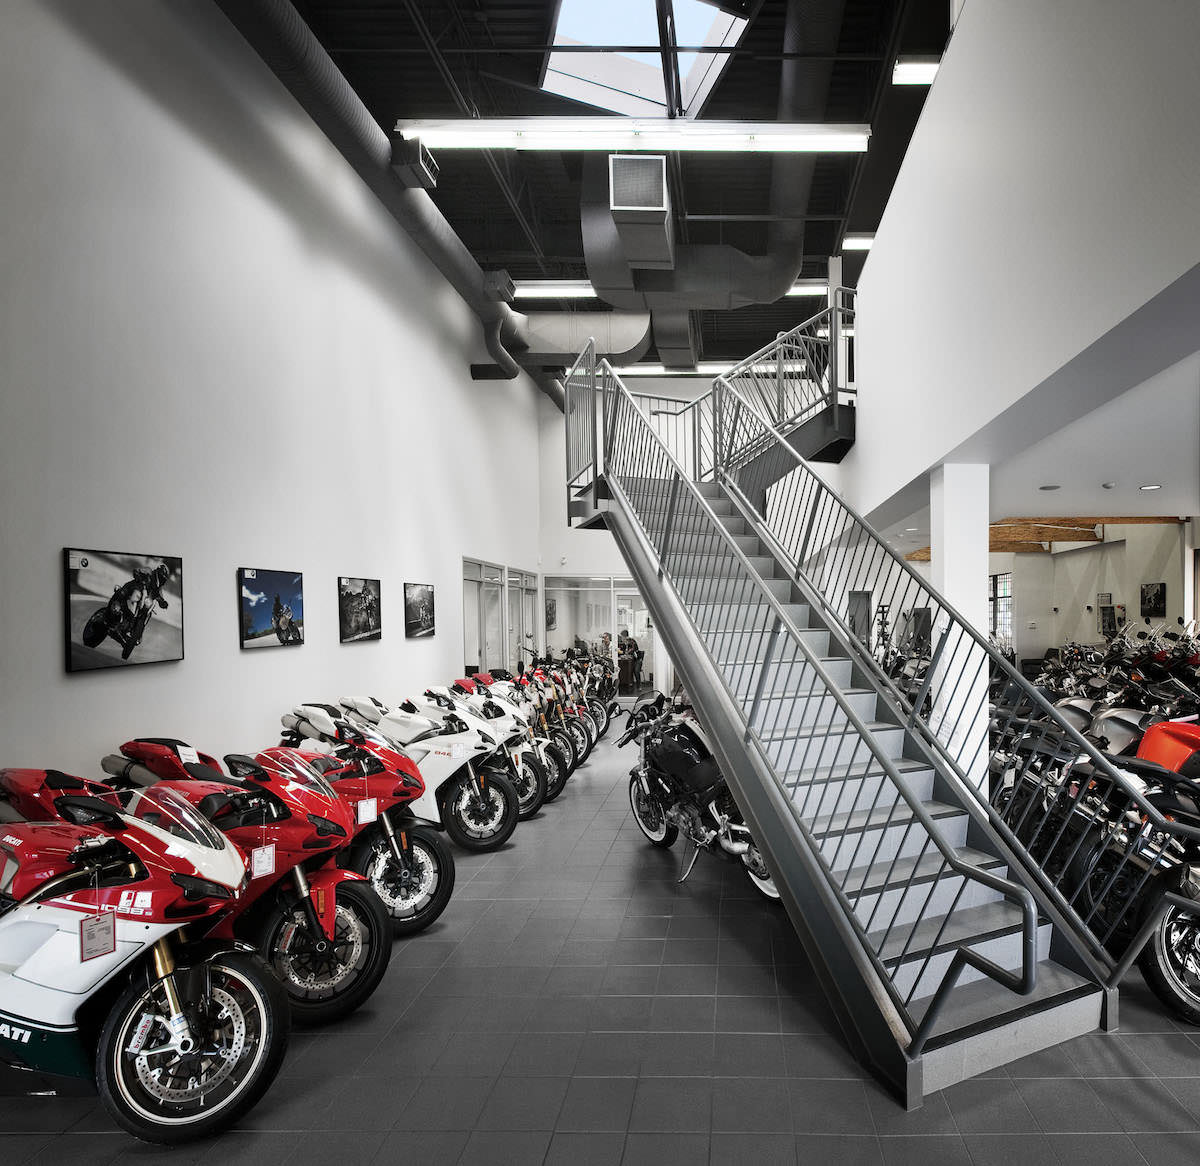 john valk bmw / ducati dealership - abbarch